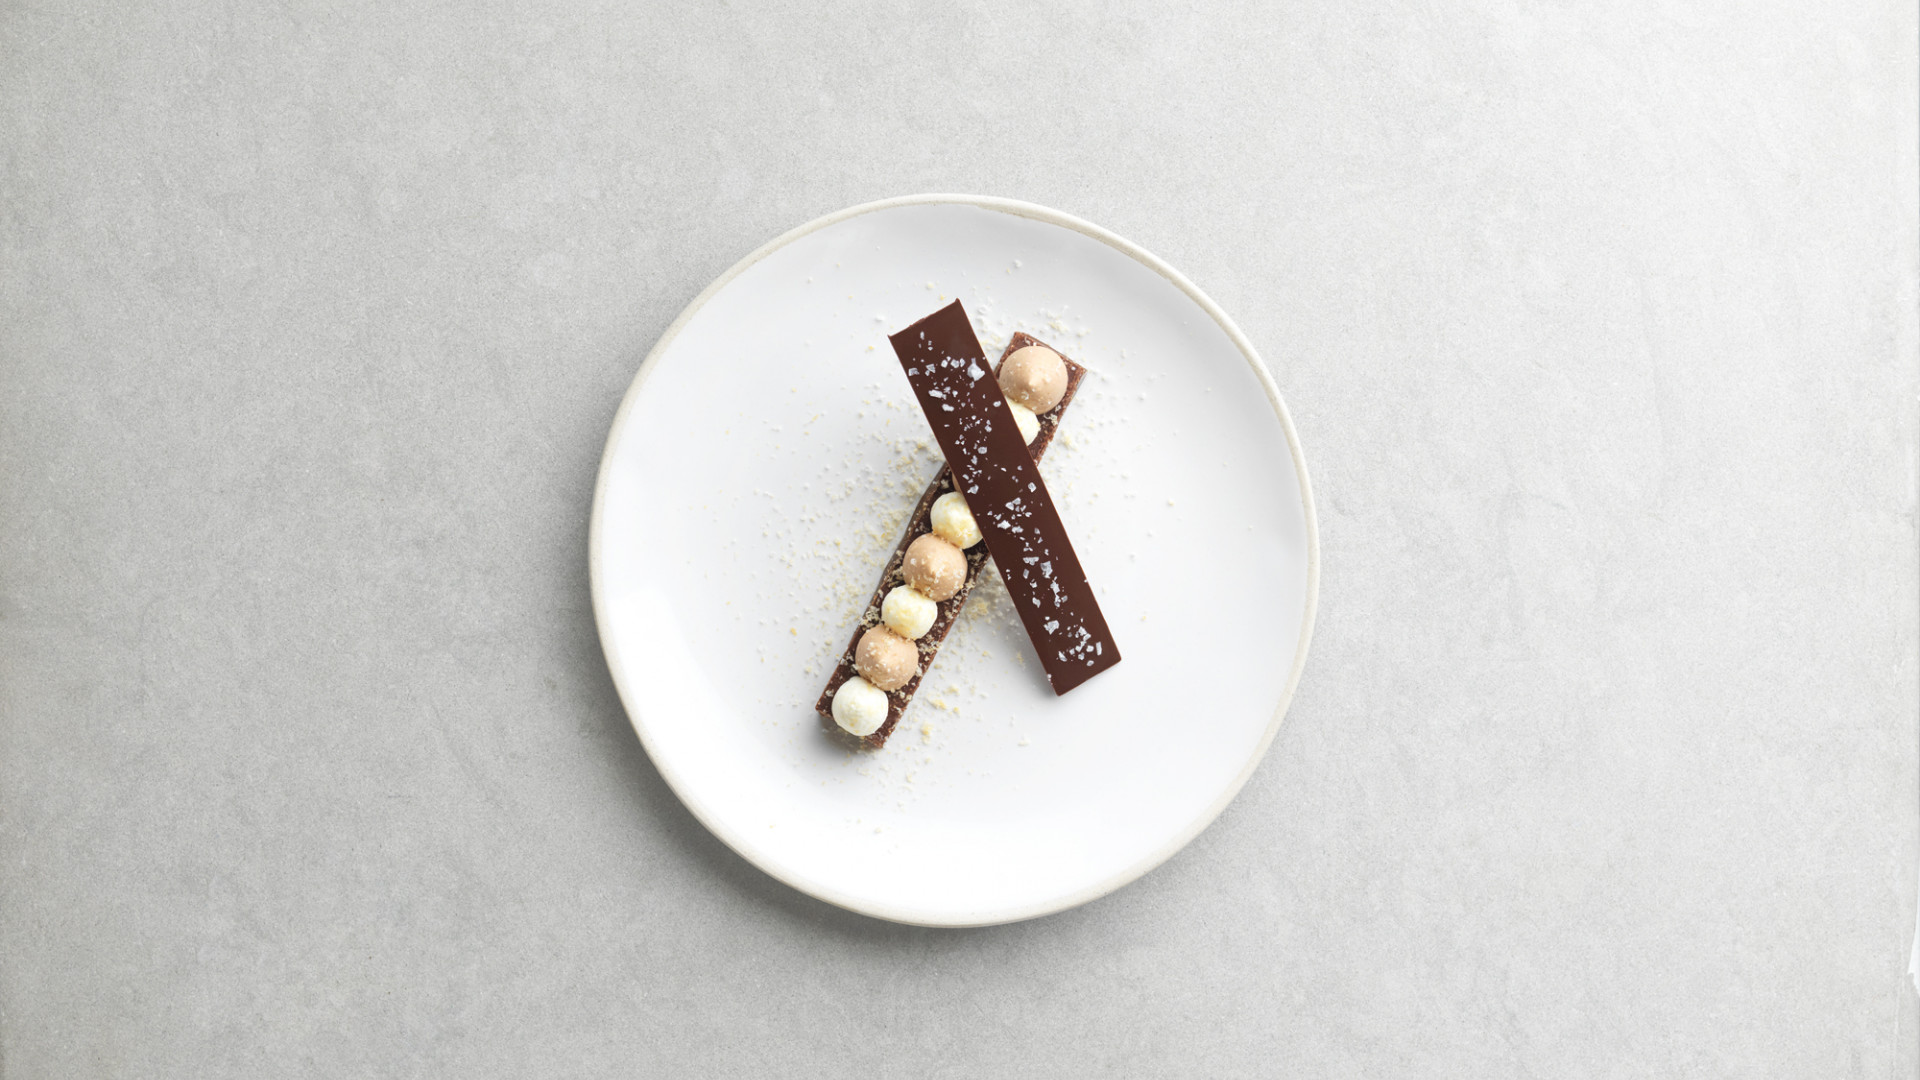 Chocolate nougatine at Marcus